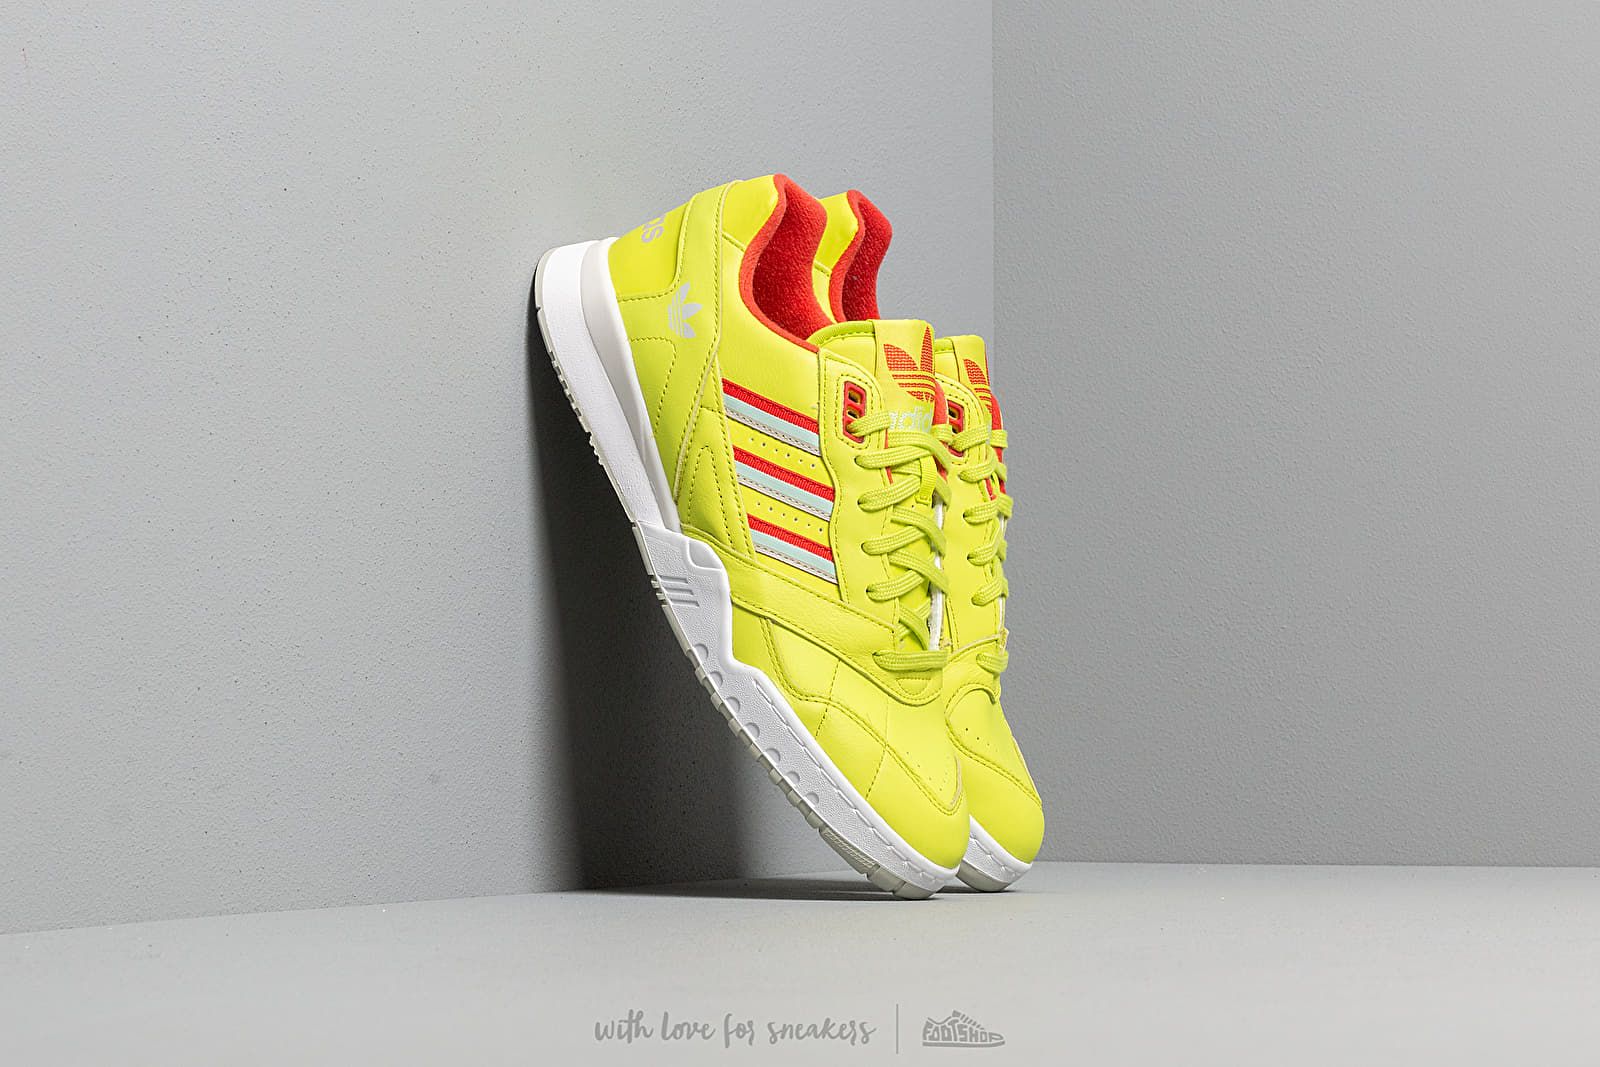 Chaussures et baskets homme adidas A.R. Trainer Semi Solar Yellow/ Lush Red/ Vapor Green